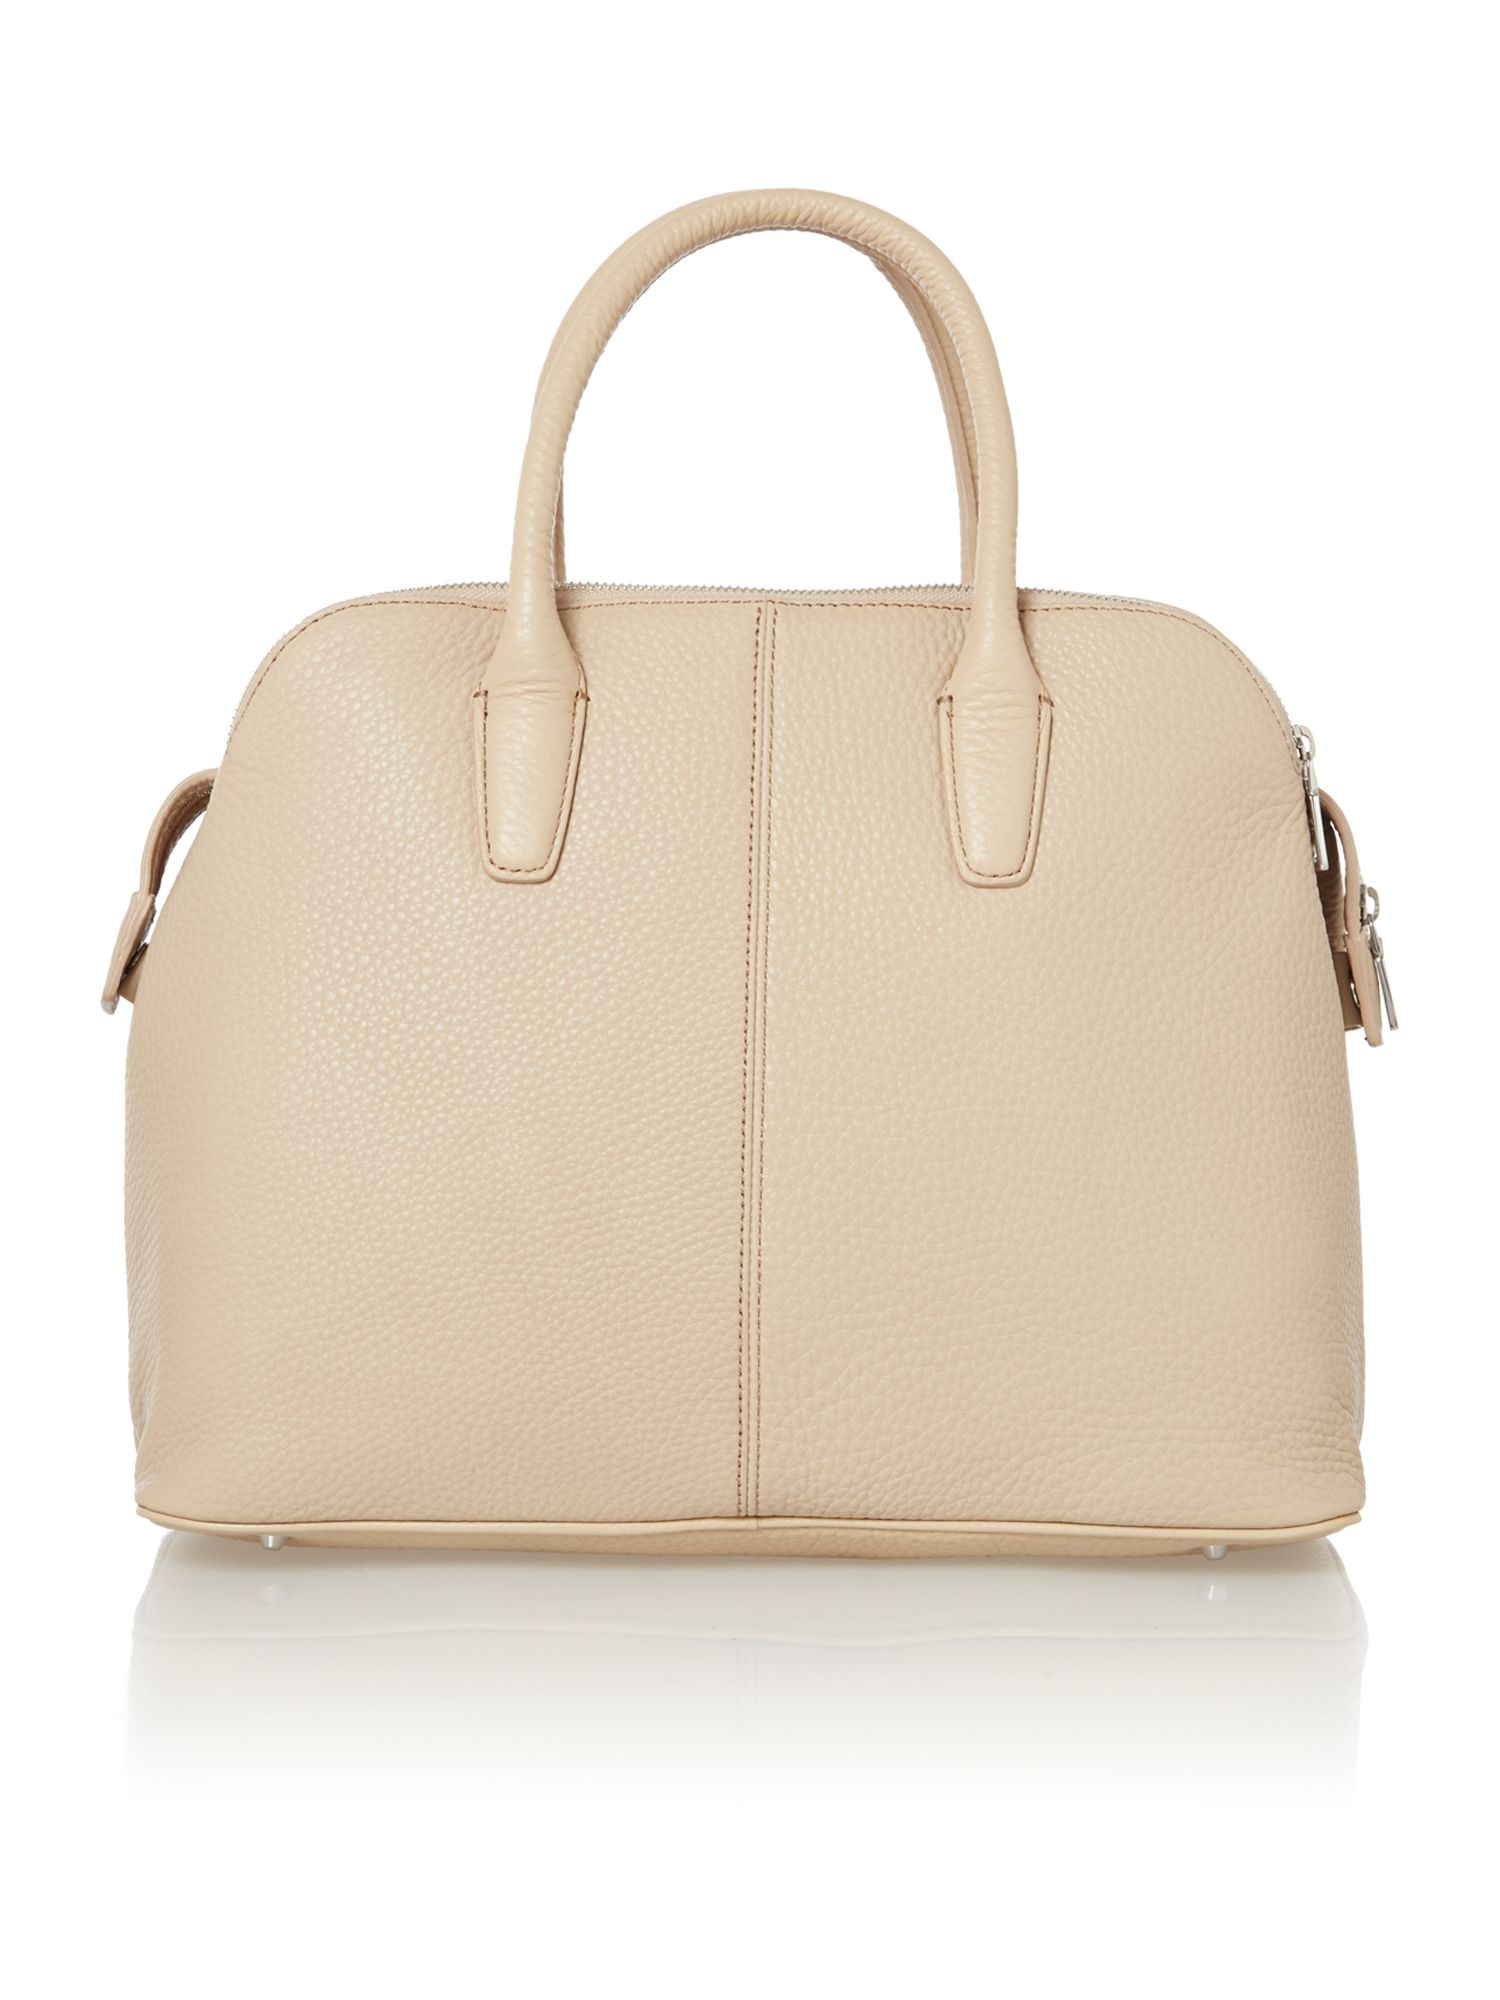 Tribeca neutral tote bag